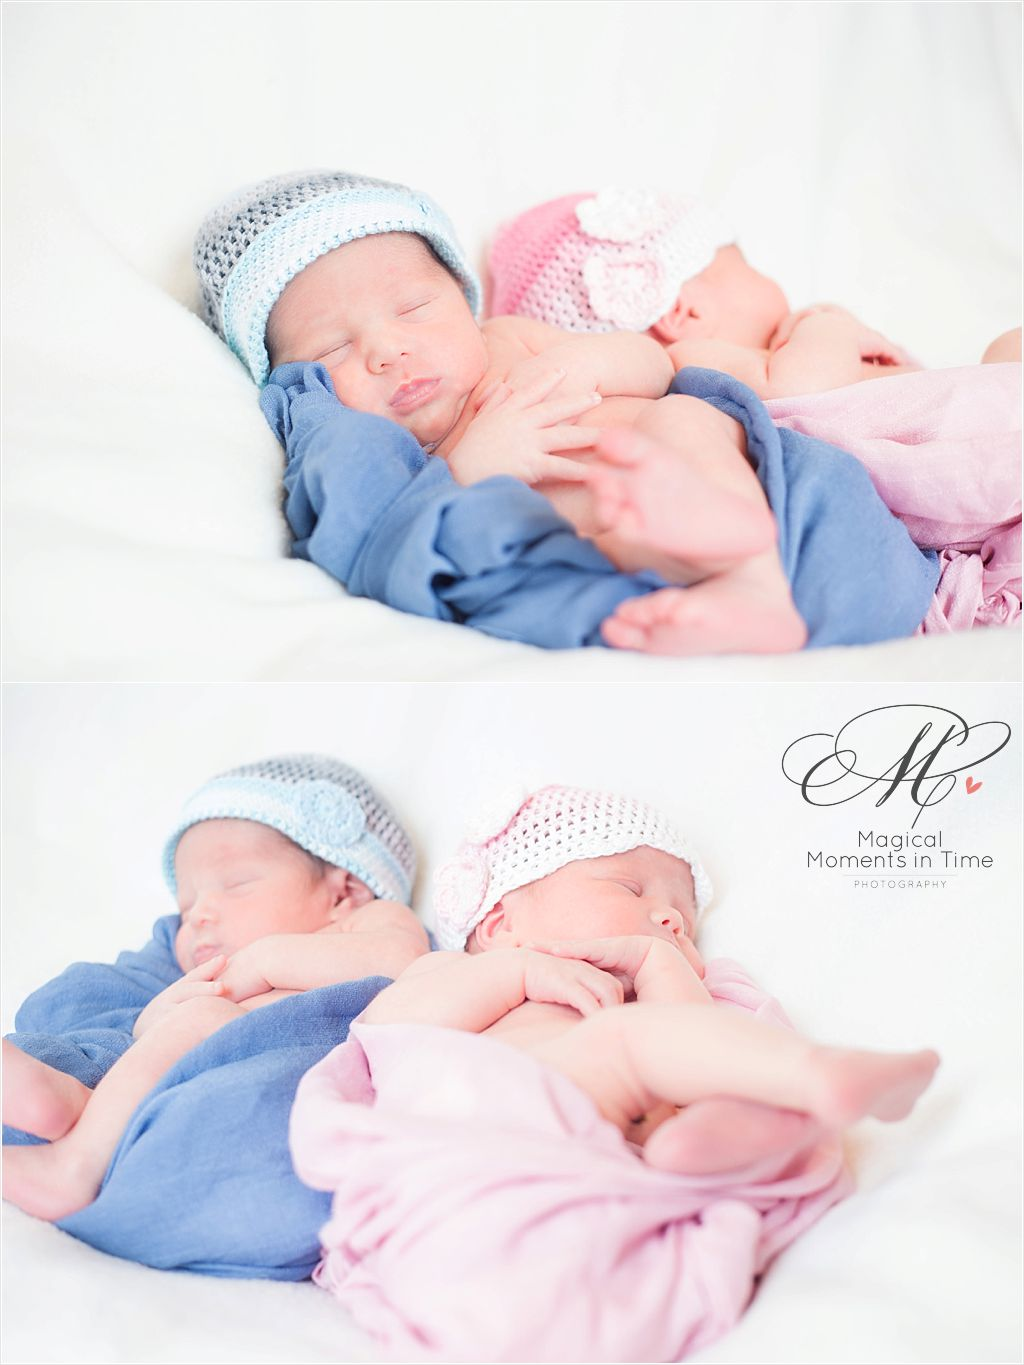 cape town newborn twin photoshoot in beanies and wraps